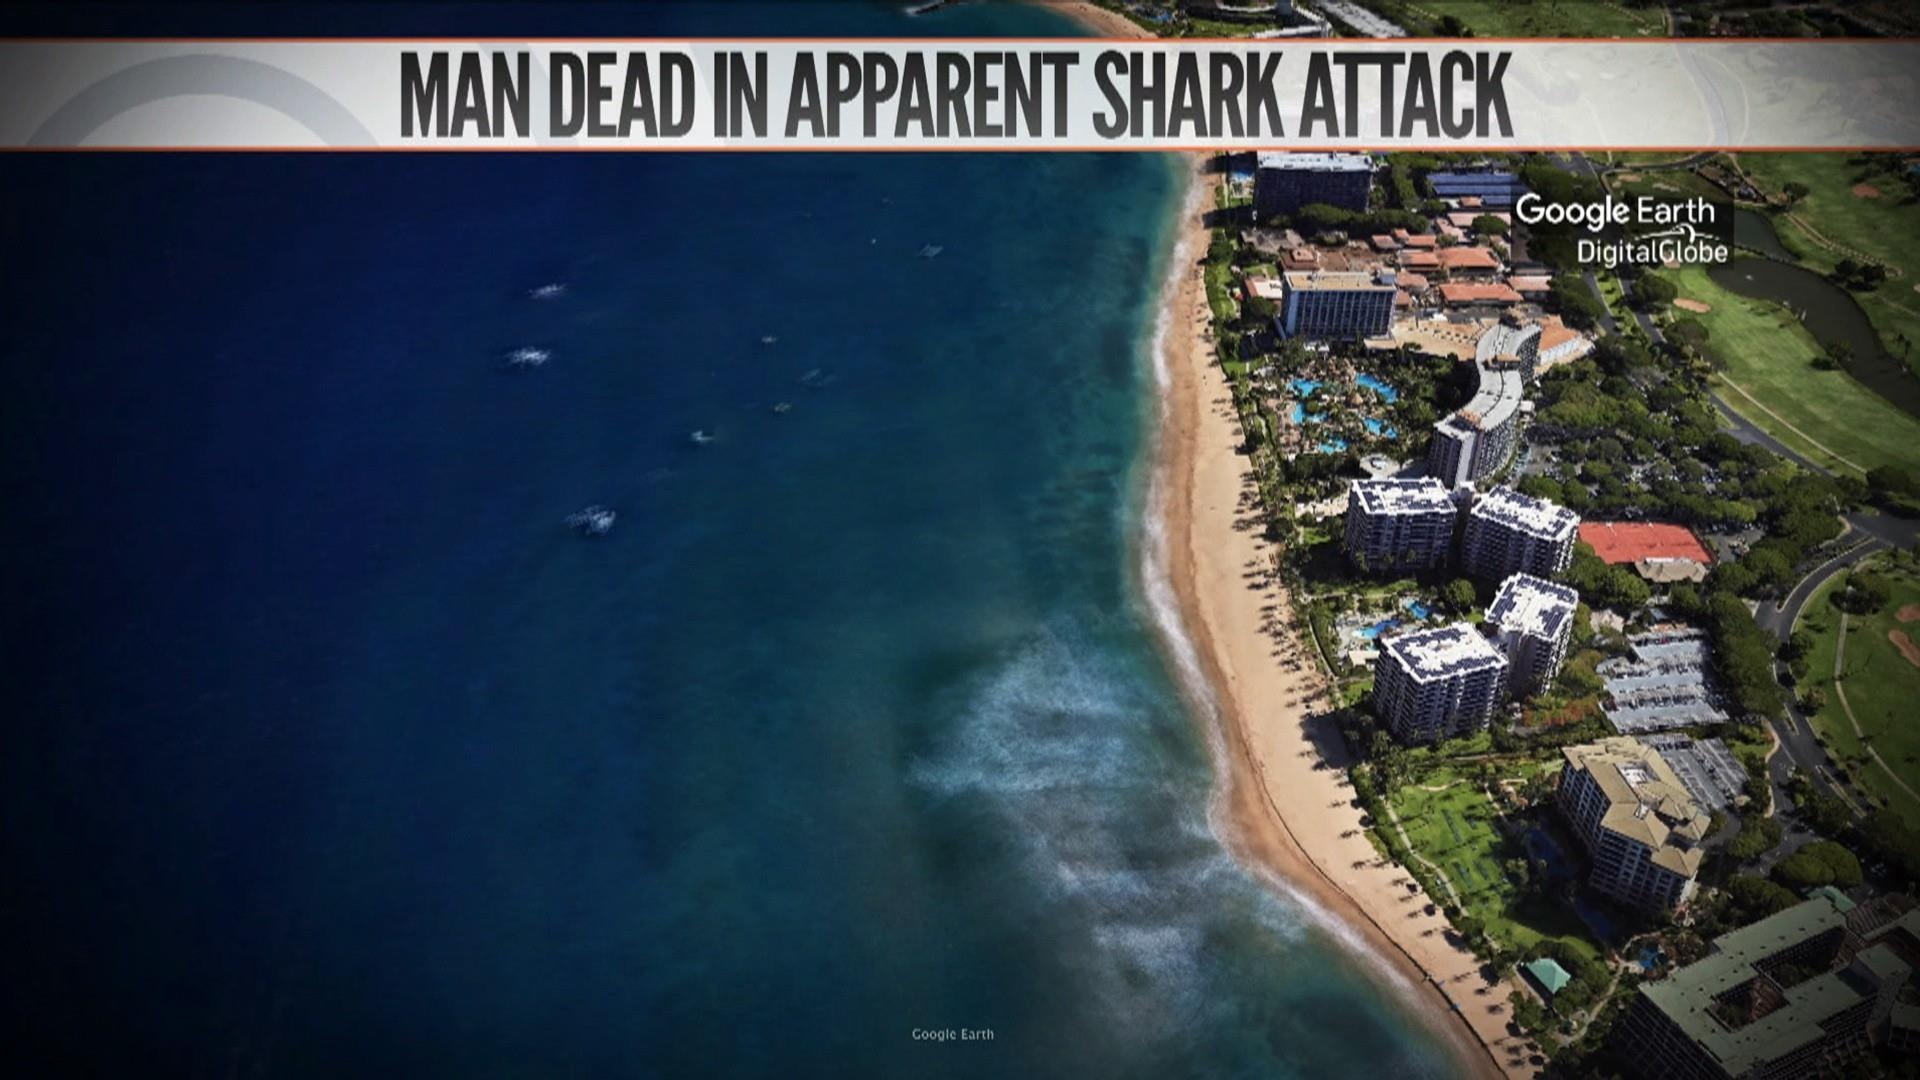 Flipboard: Tourist killed in apparent shark attack in Hawaii